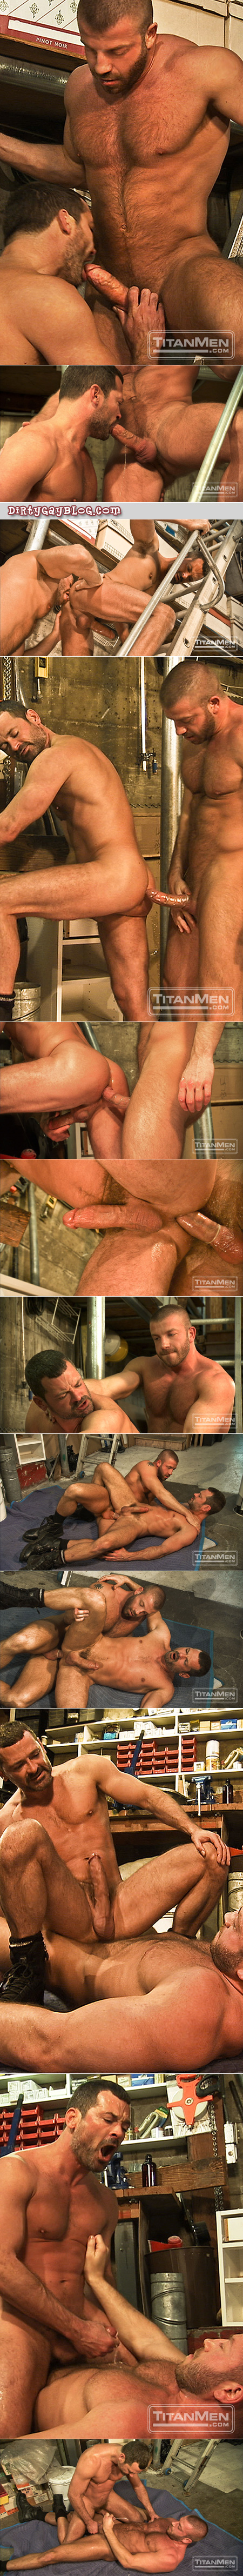 Mature, beefy, hairy men in a warehouse garage strip down to nothing but their black boots to suck dick and have anal sex.